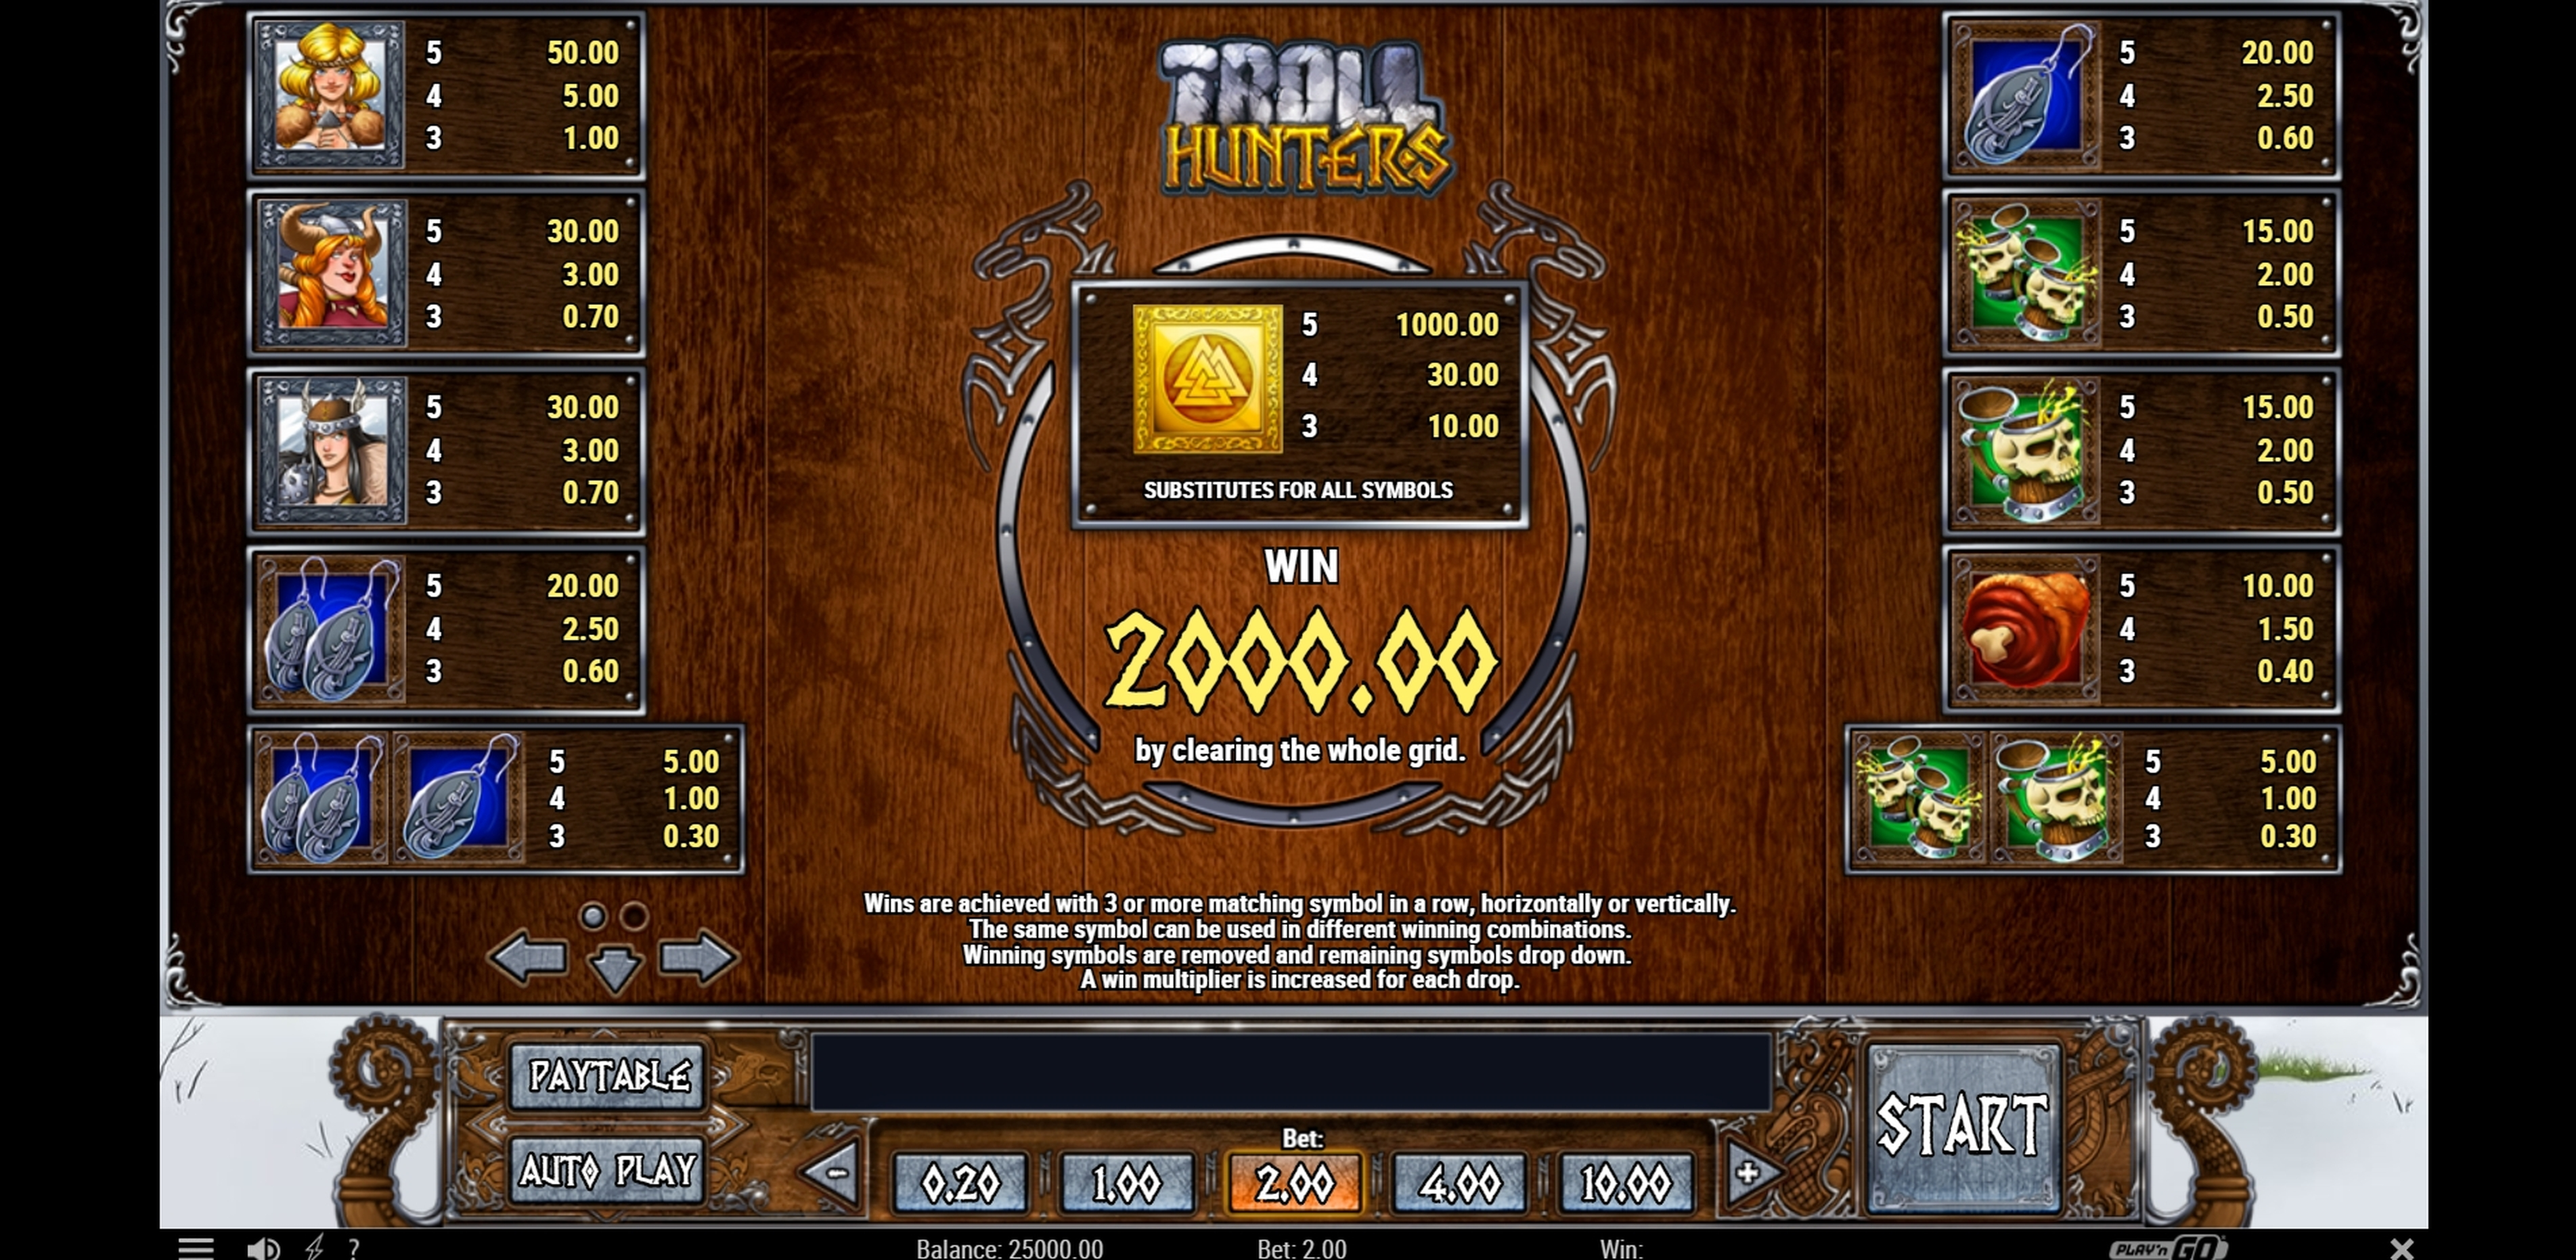 Info of Troll Hunters Slot Game by Play'n Go